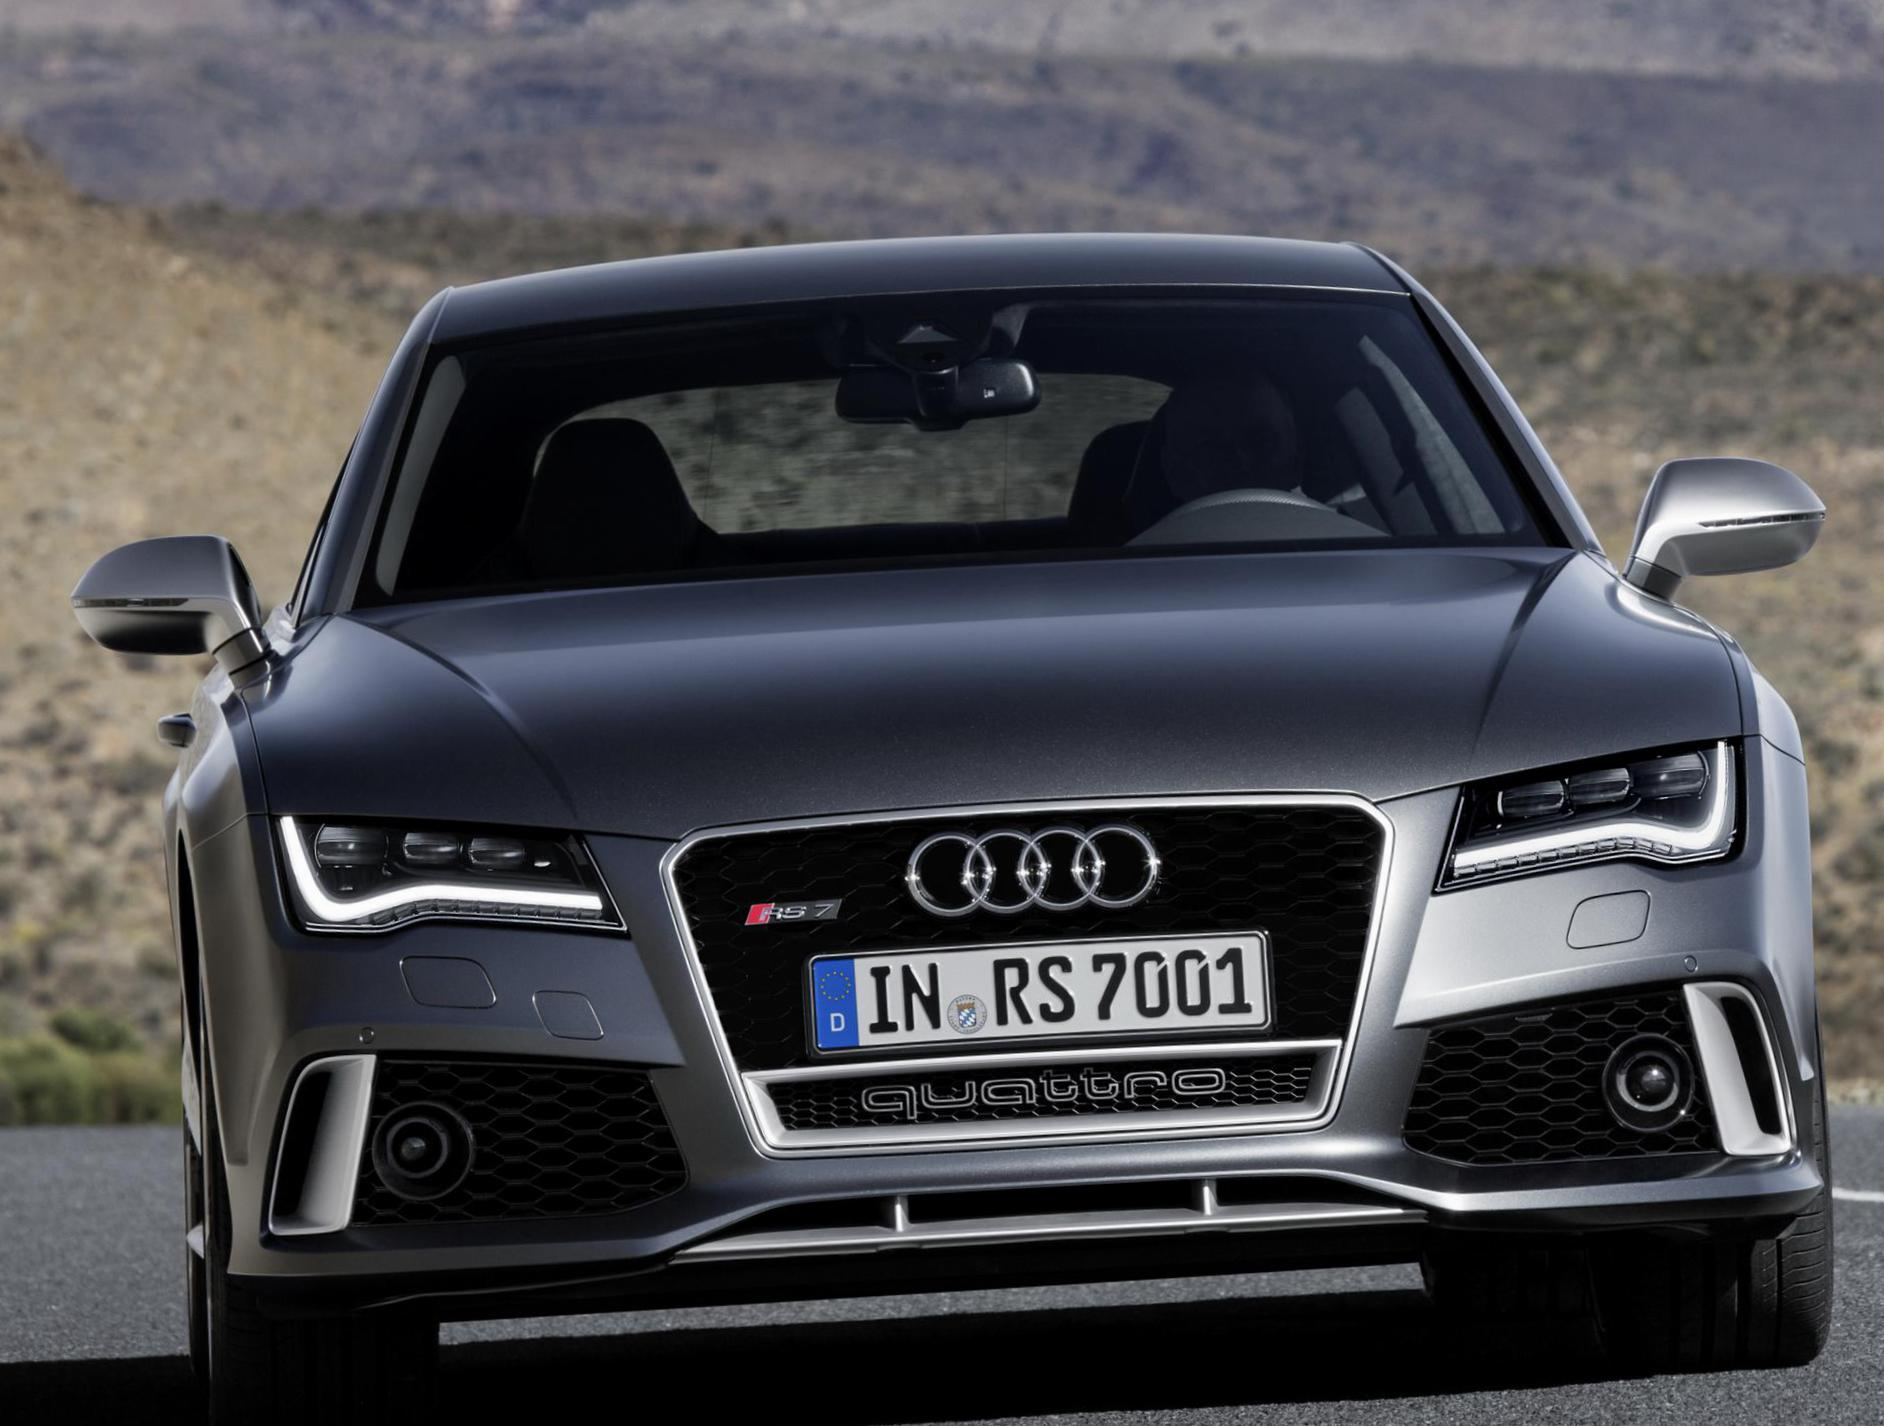 Audi Rs7 2011 >> Audi Rs7 Sportback Photos And Specs Photo Audi Rs7 Sportback Specs